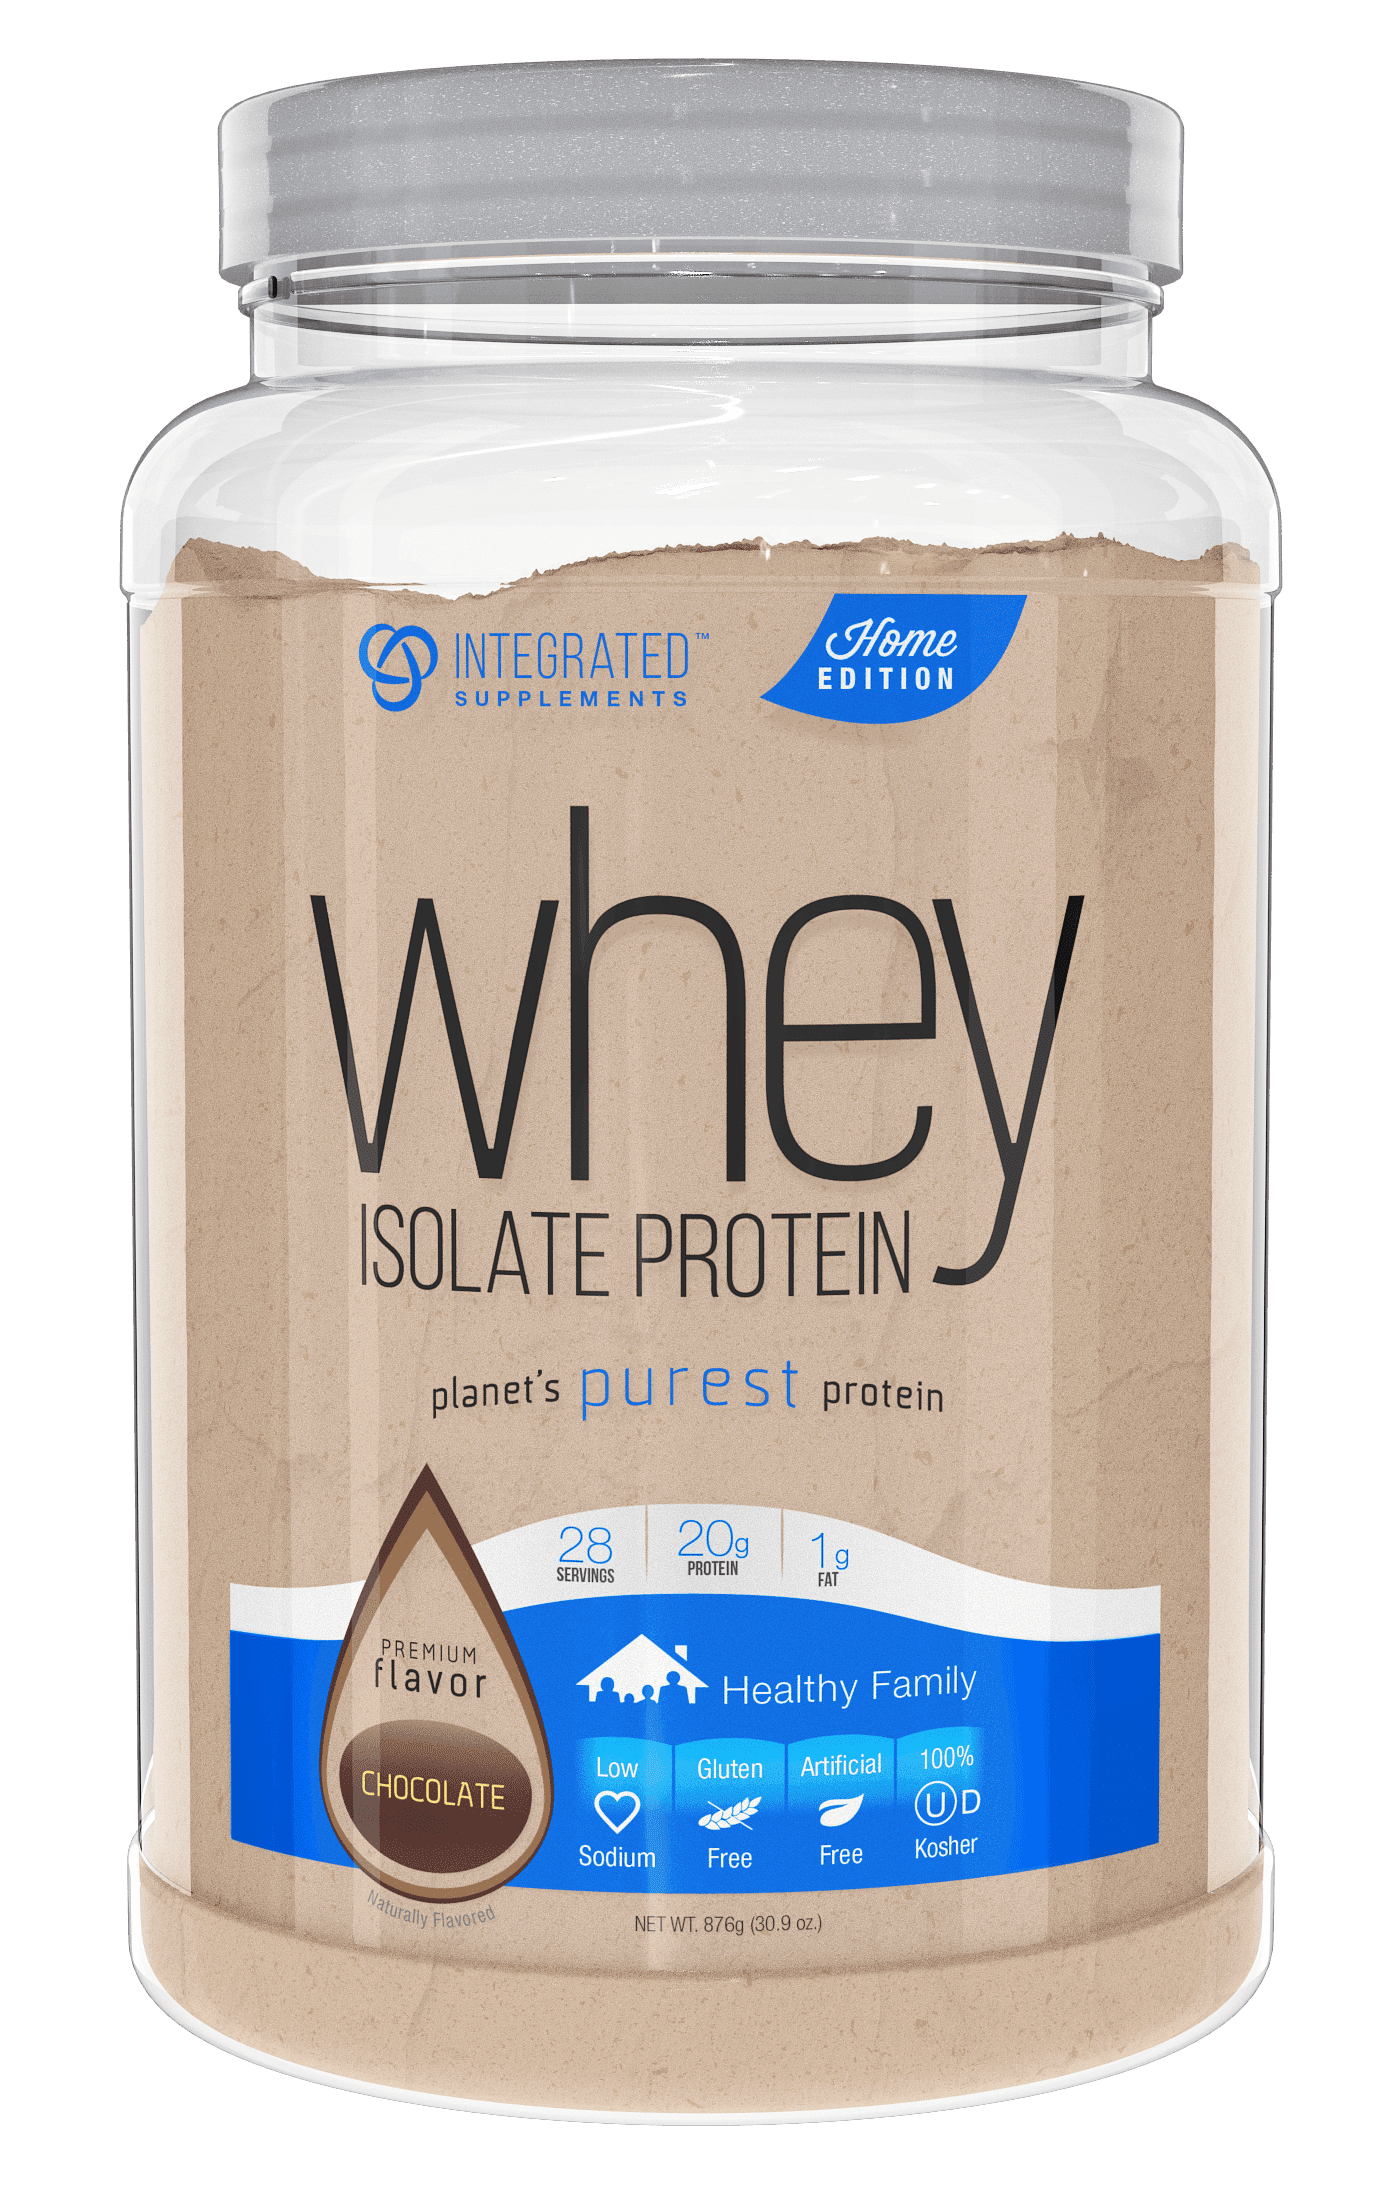 Insta Supplement Magazine: Planet's Purest Protein: Whey Isolate Protein